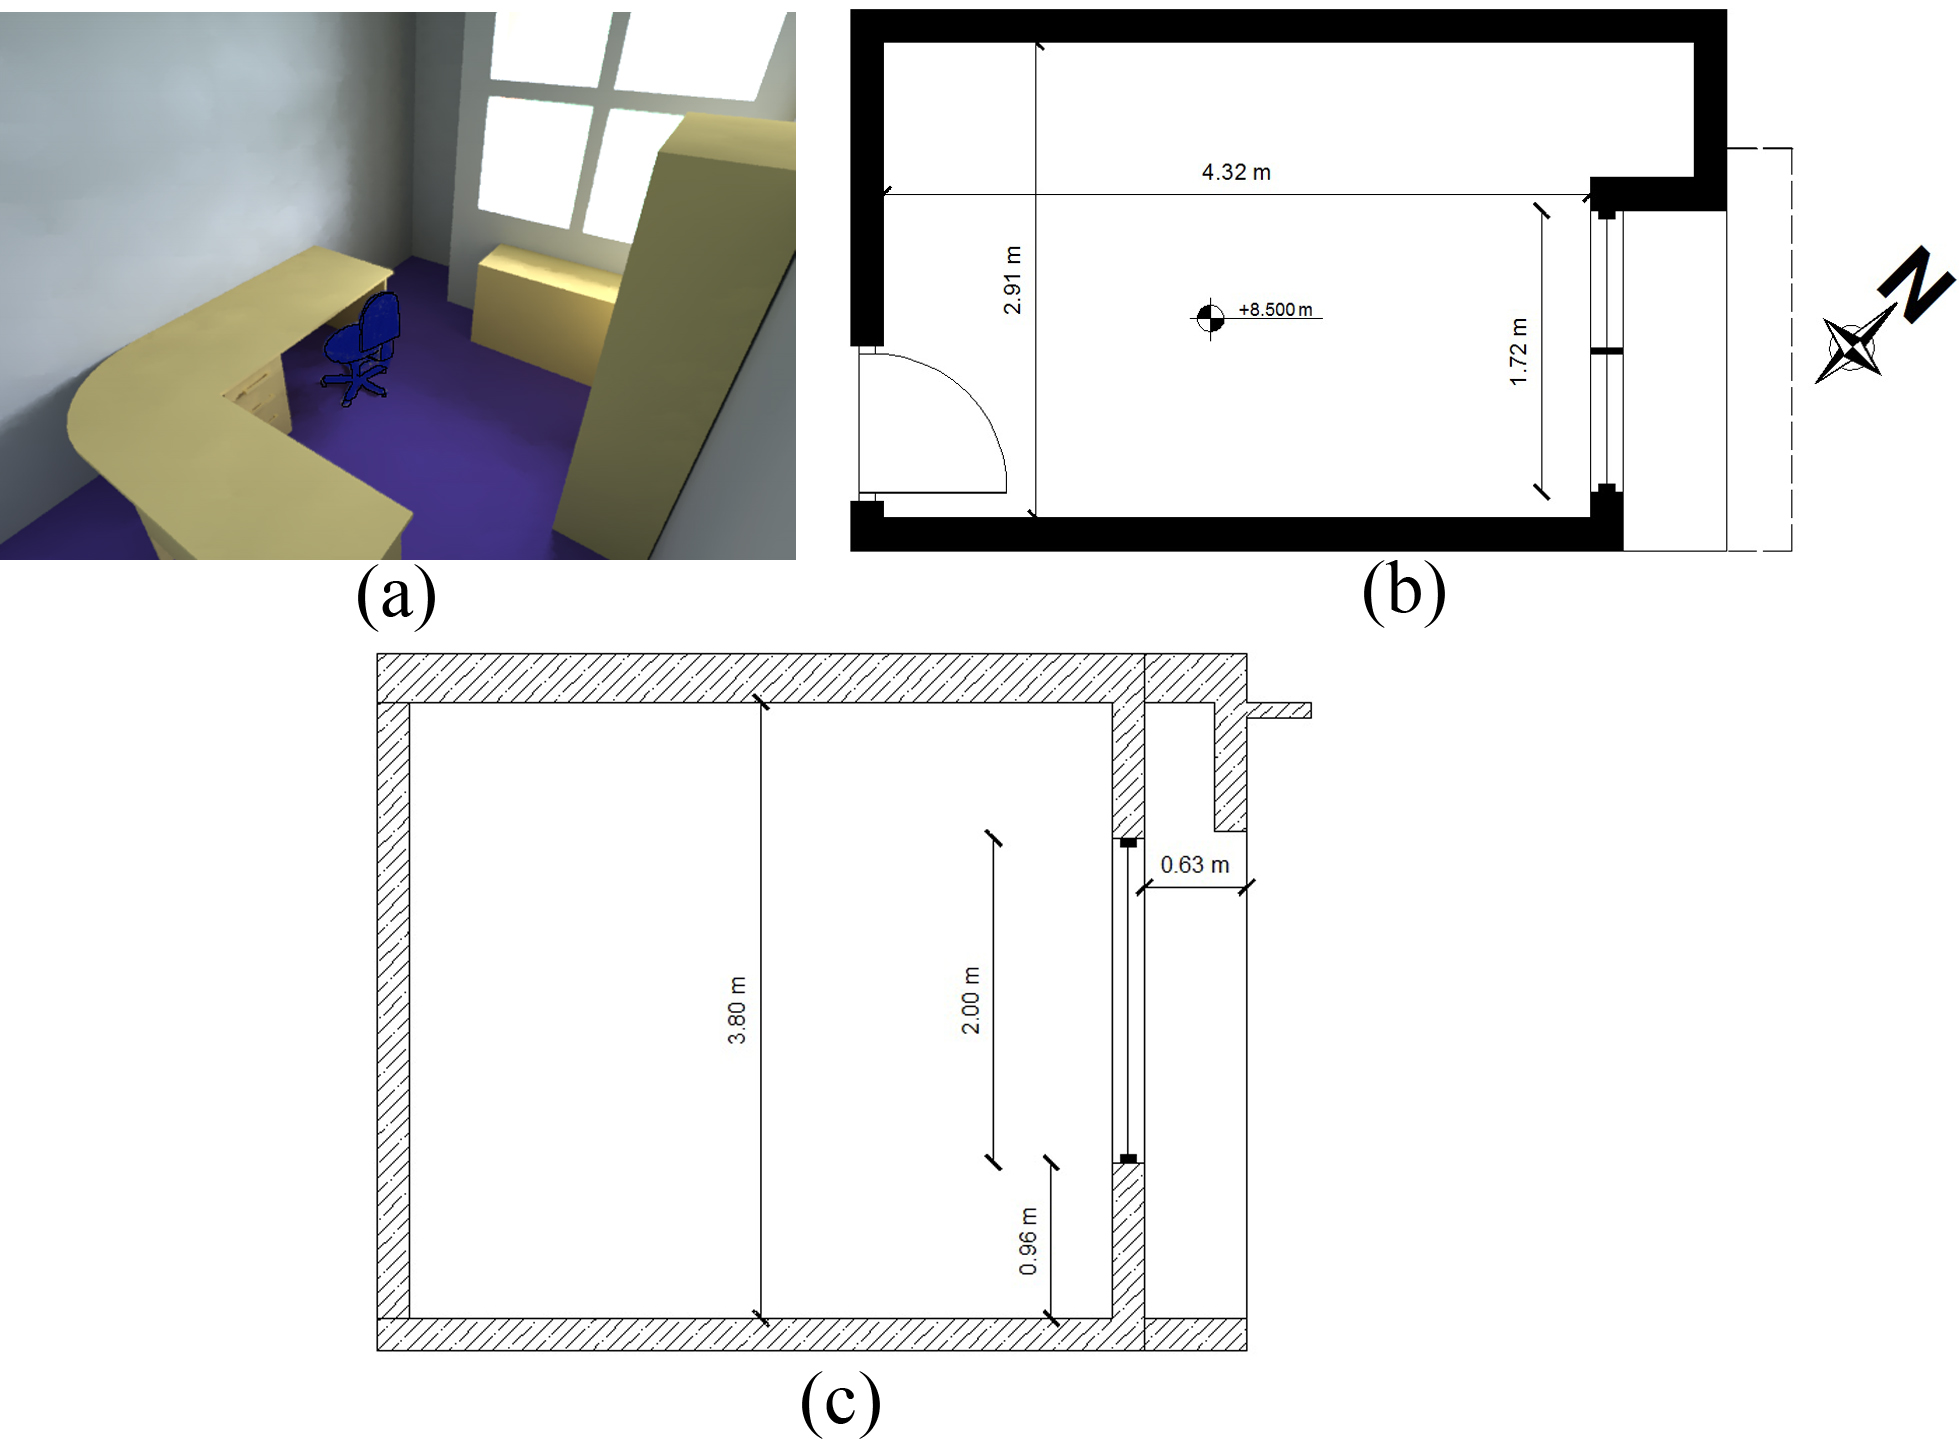 impact of furniture layout on indoor daylighting performance in